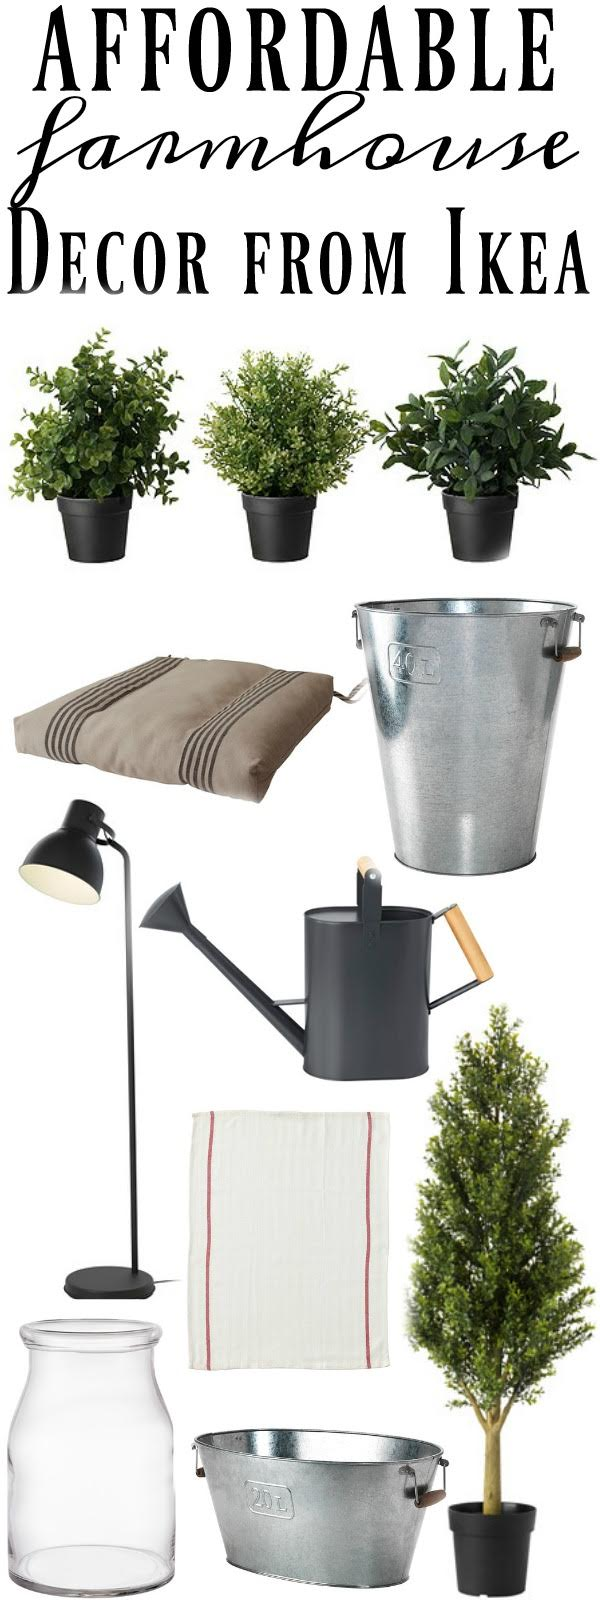 Farmhouse Decor From Ikea - The best farmhouse finds from Ikea styled in a farmhouse.